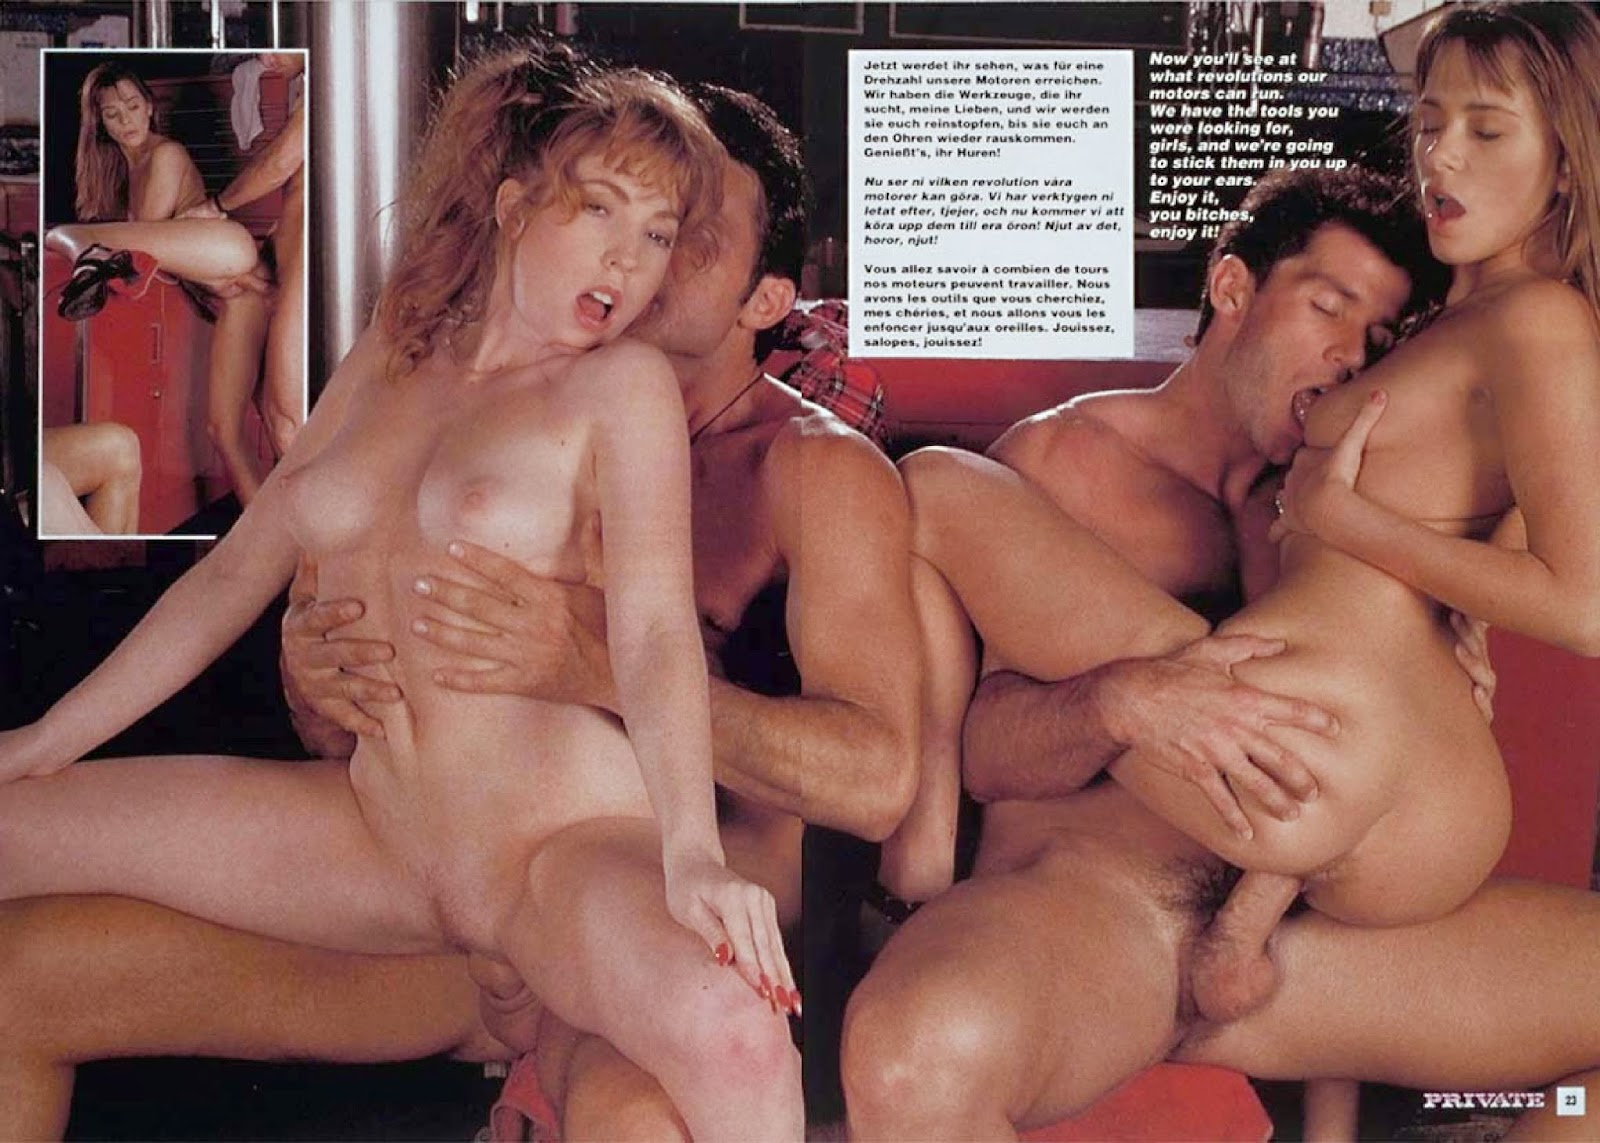 Have thought privat gangbang video